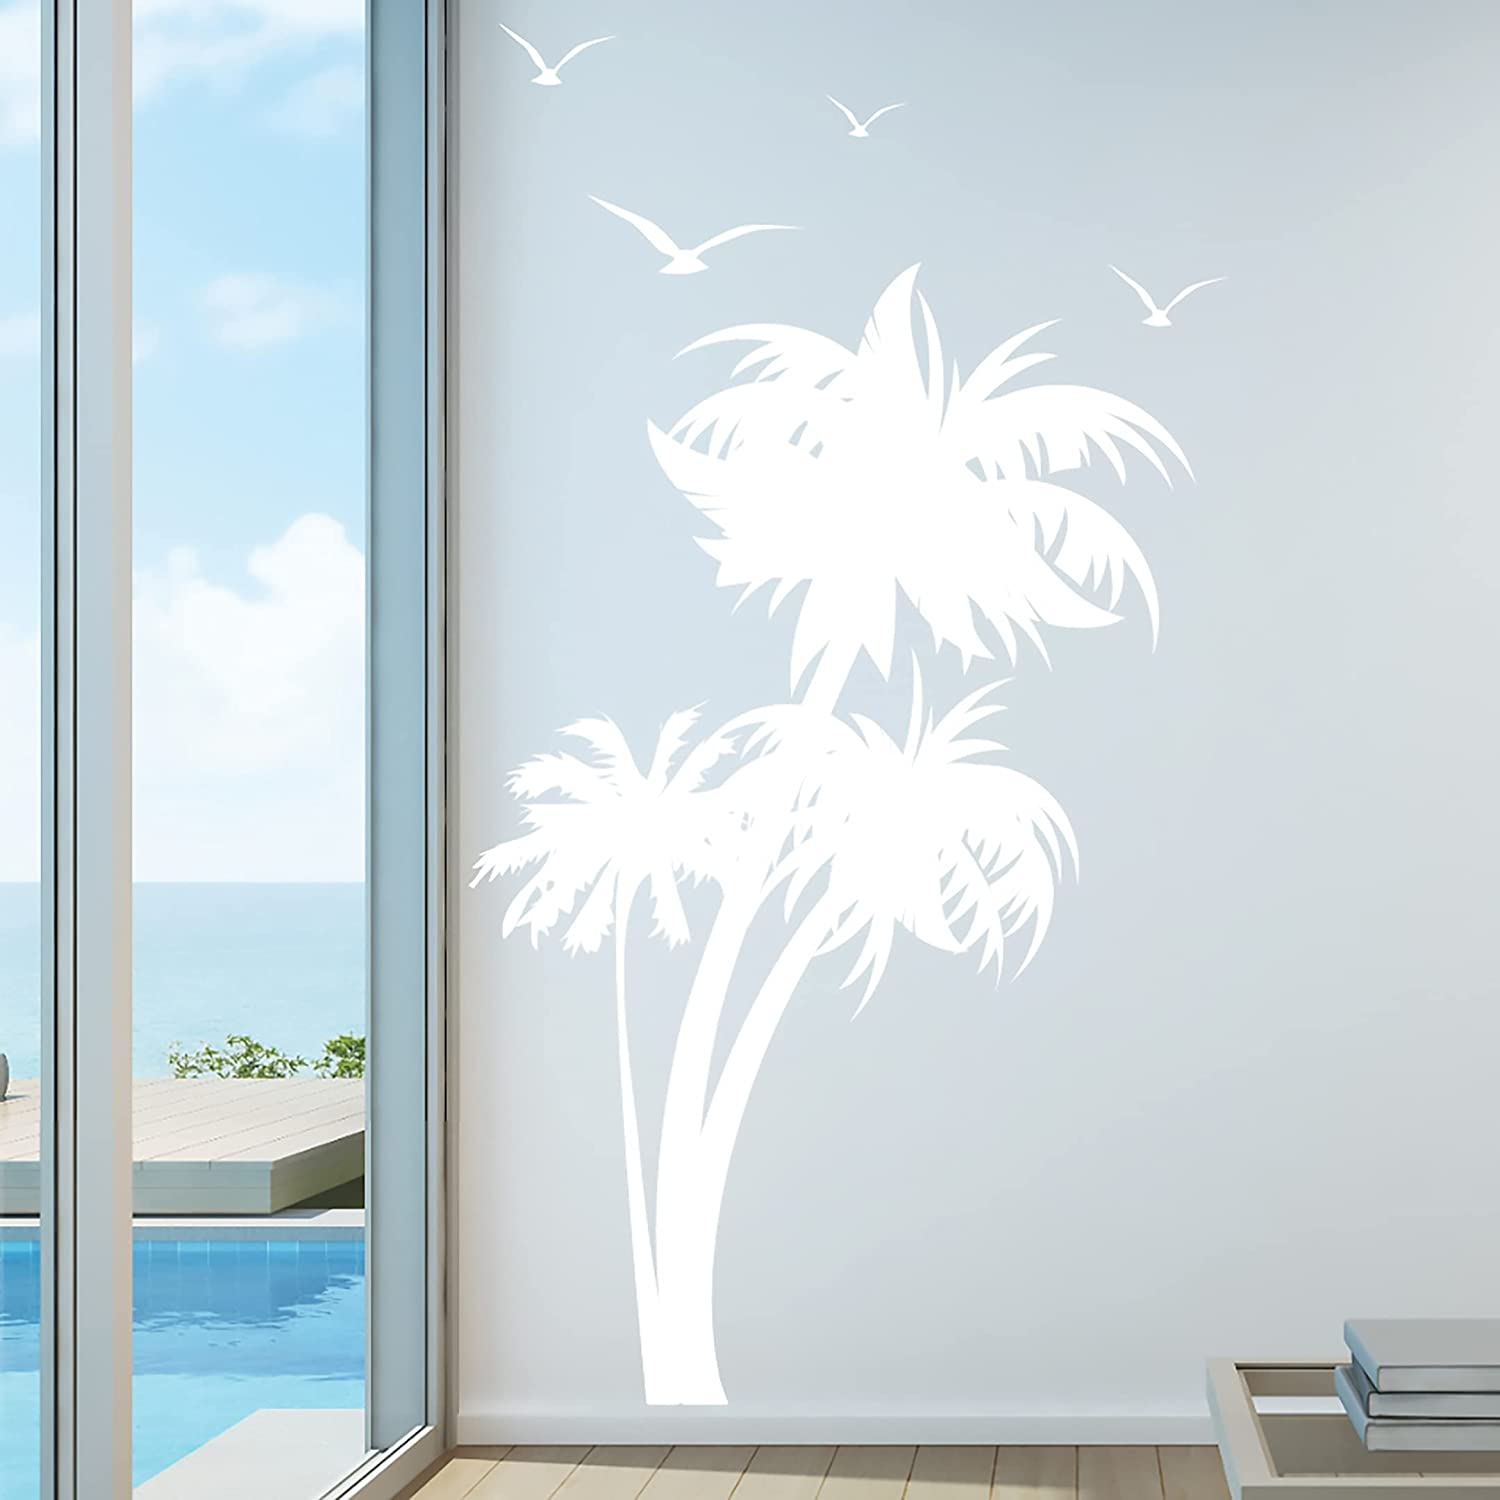 Outlet ☆ Free Shipping Innovative Stencils 1132 84 Max 70% OFF mwhite Palm Tree Nursery Wal Coconut